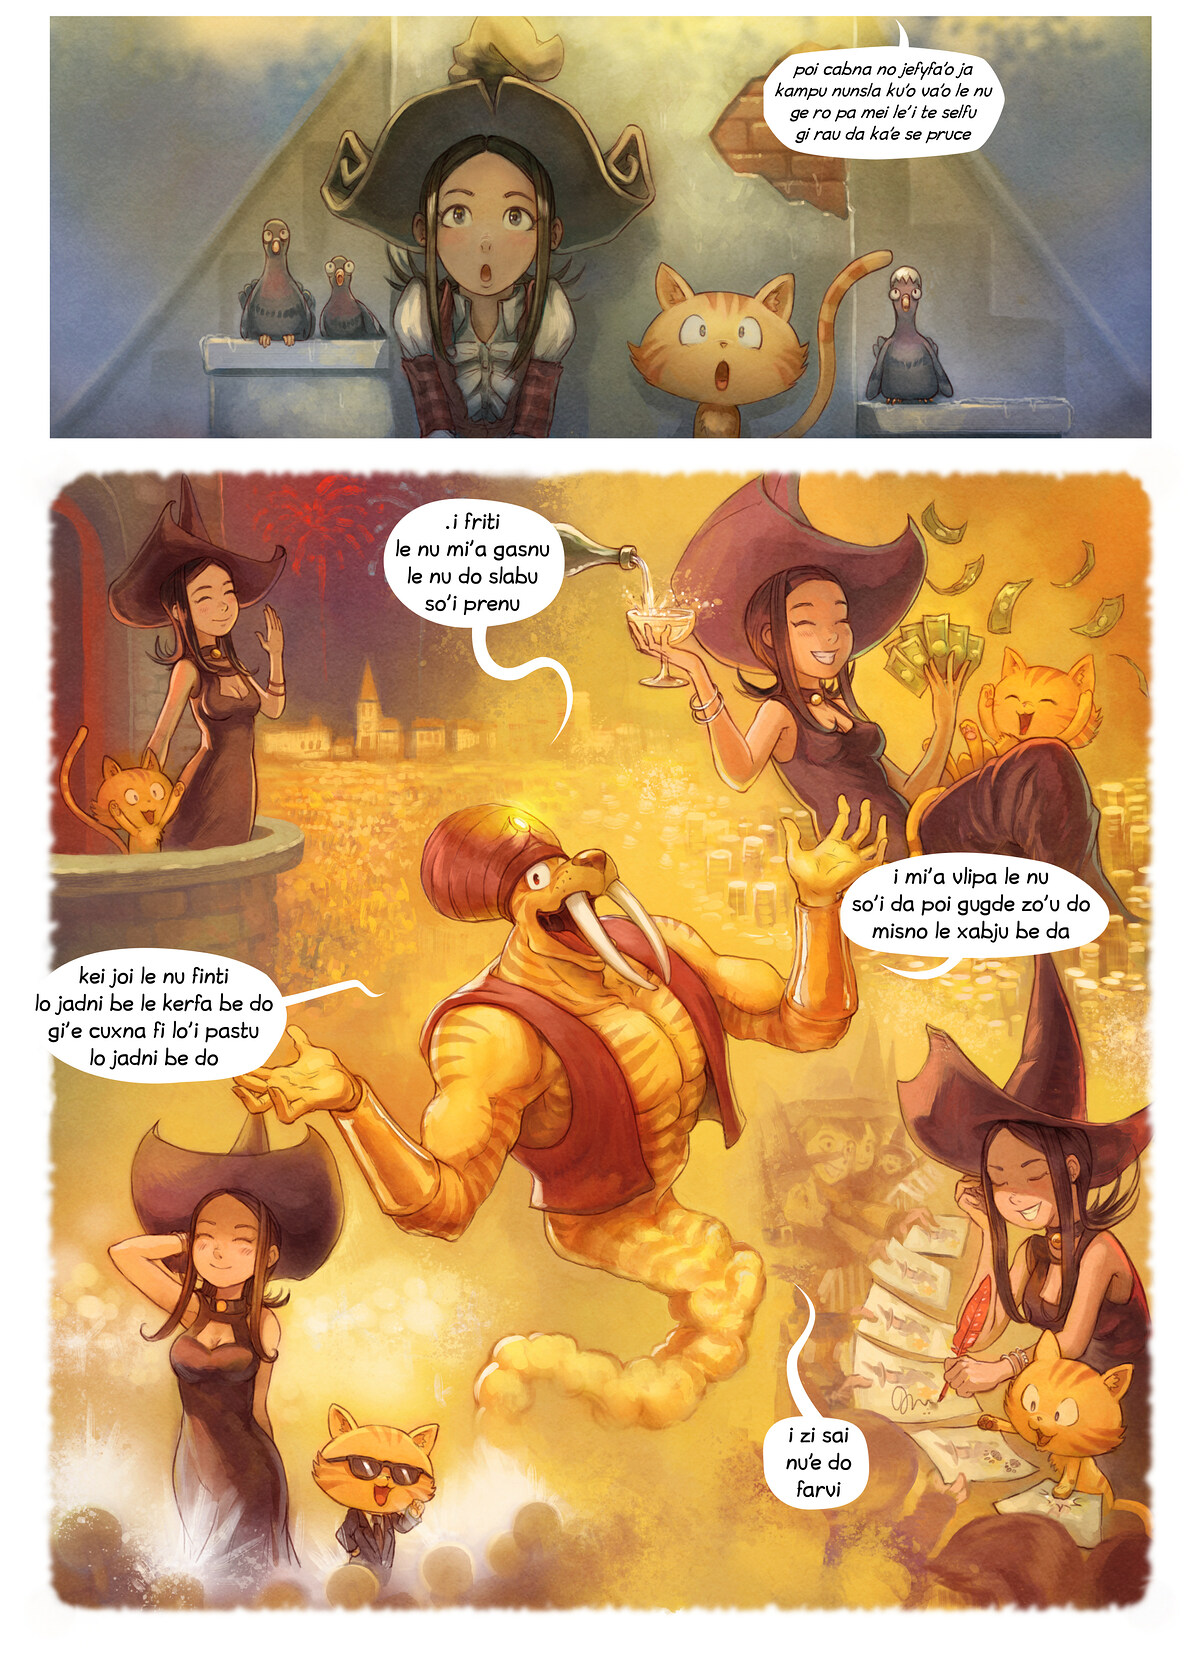 A webcomic page of Pepper&Carrot, pagbu 23 [jb], papri 4